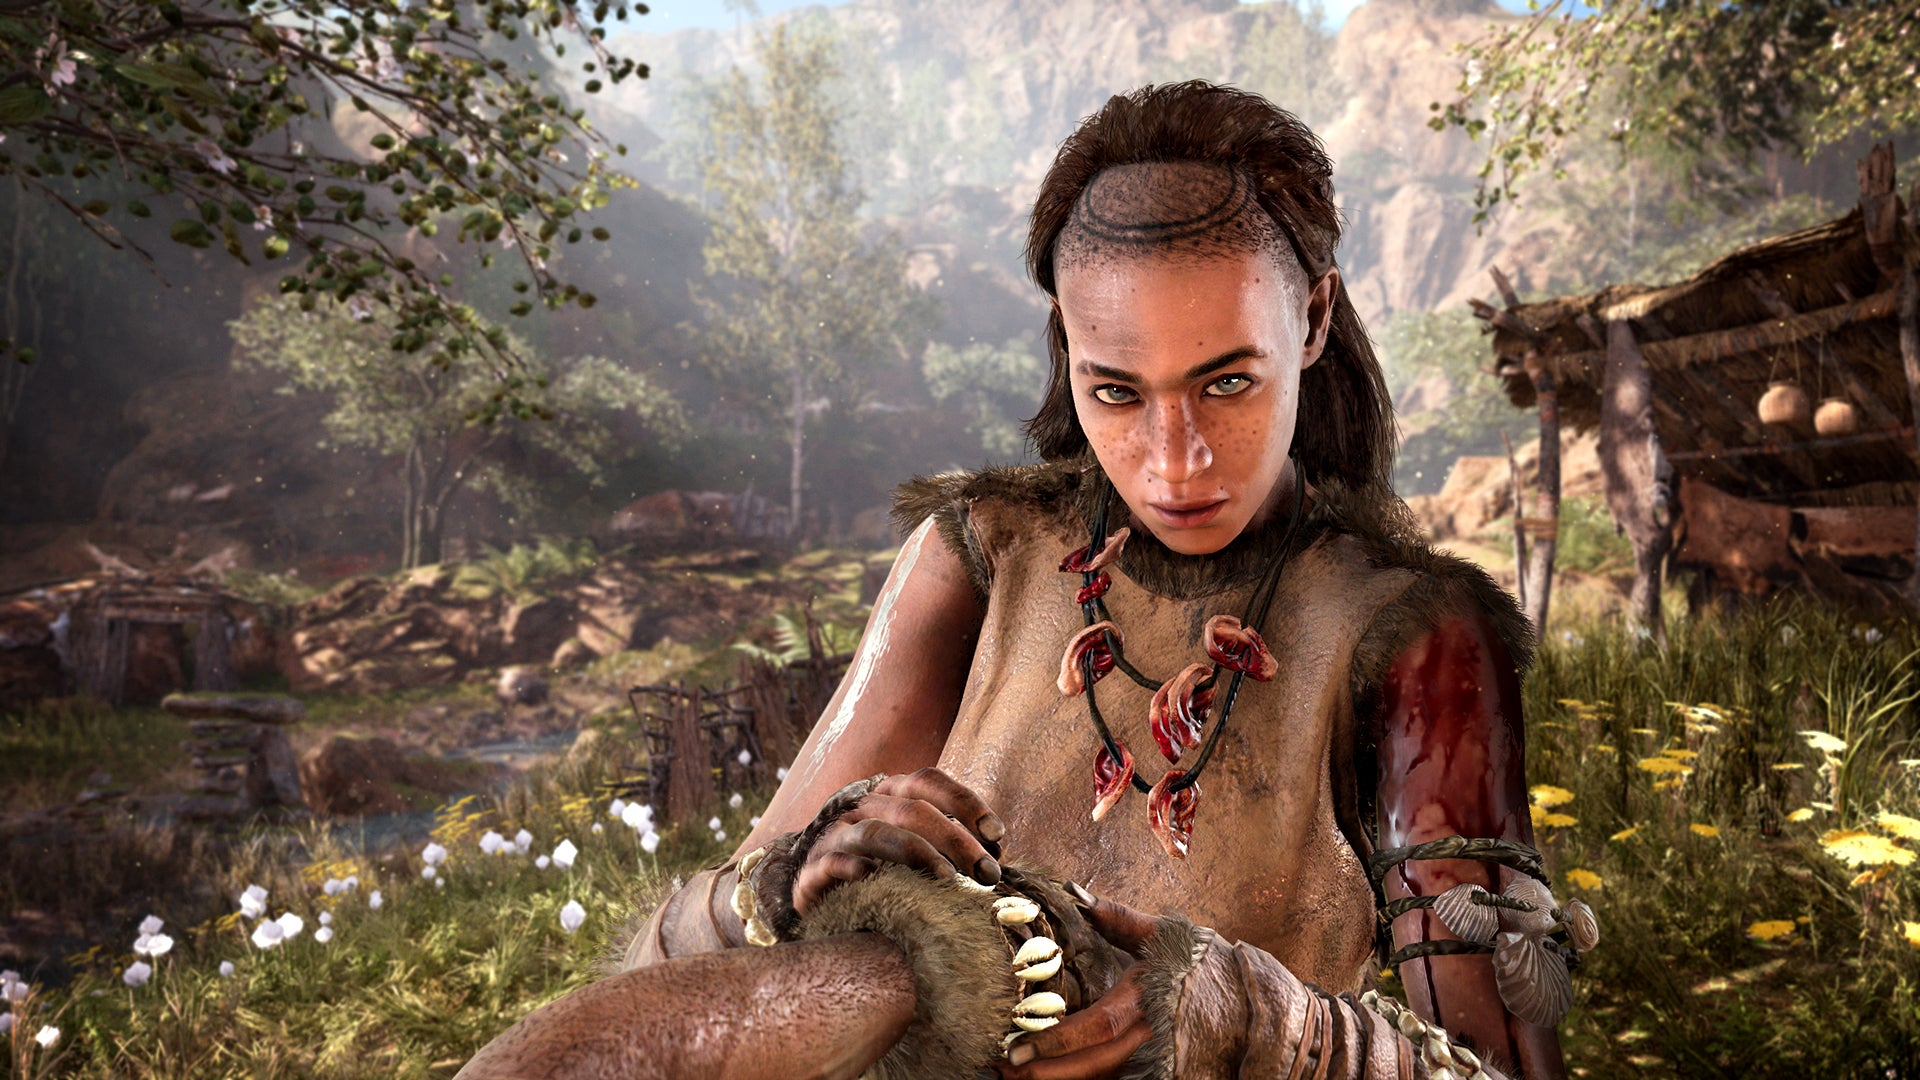 Far Cry Primal preview: Hands-on with Ubisoft's Stone Age